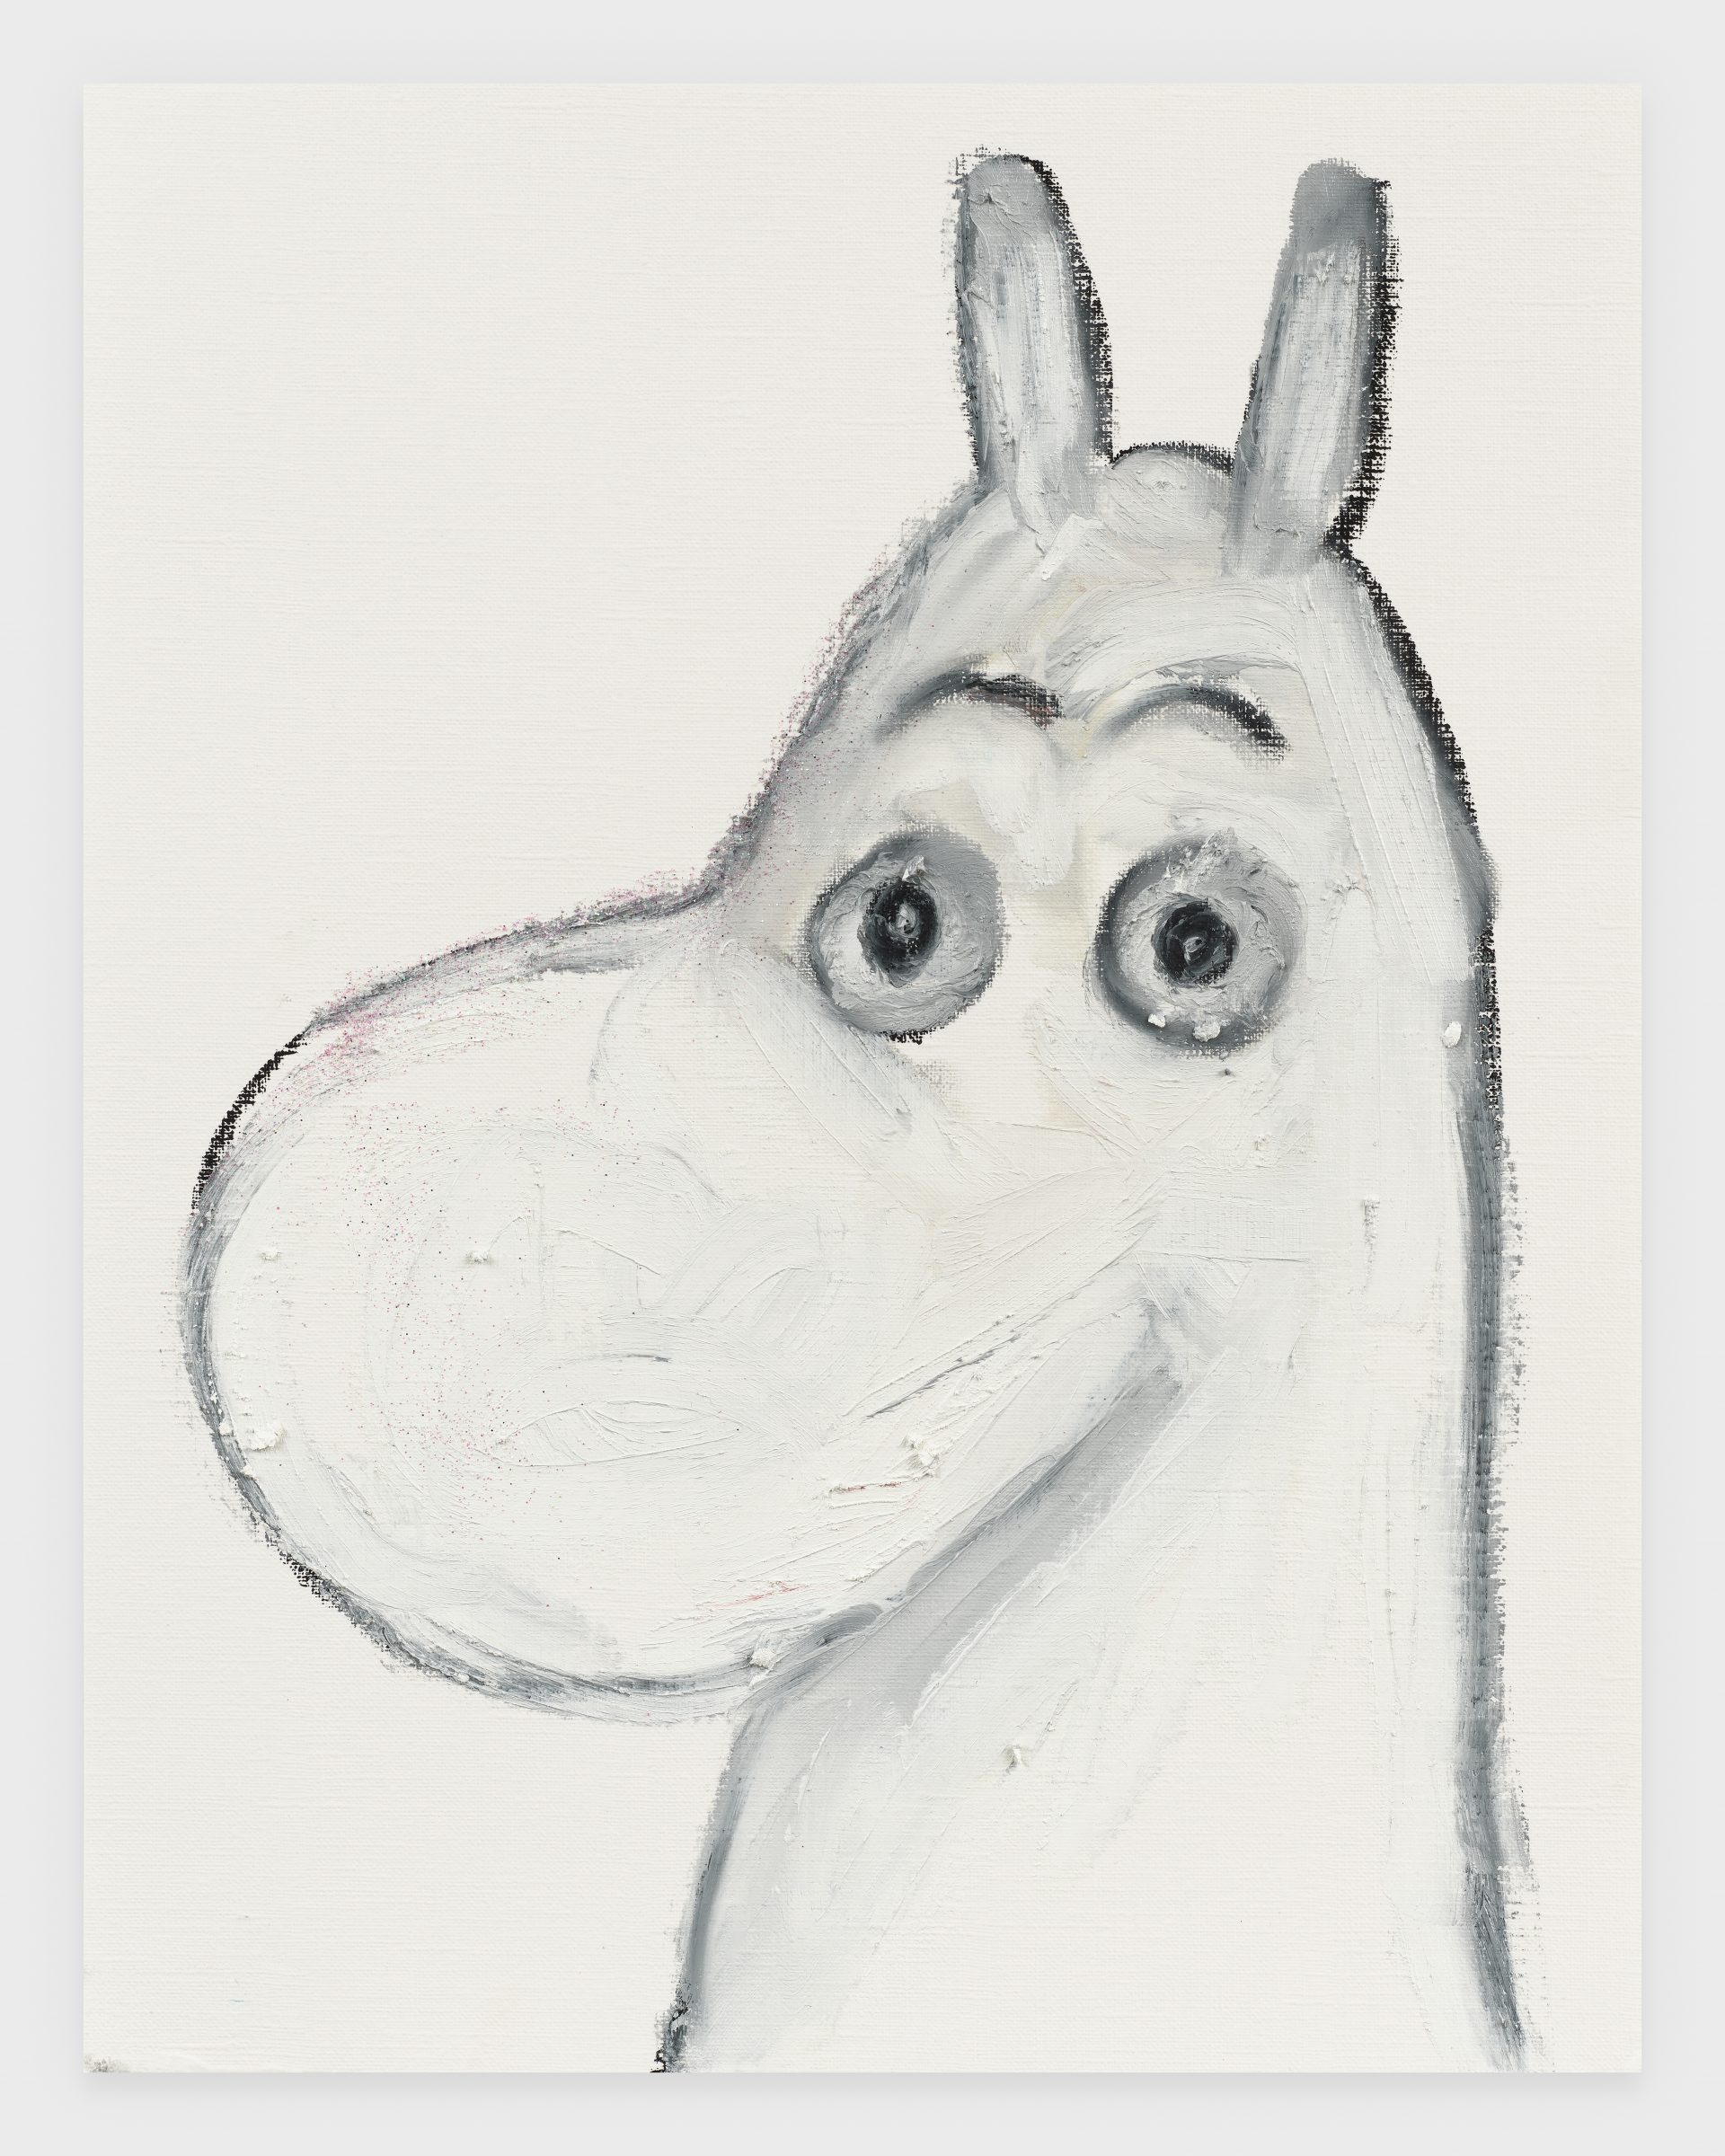 Moomin, 2020, Oil stick on archival paper, 11 x 14 inches